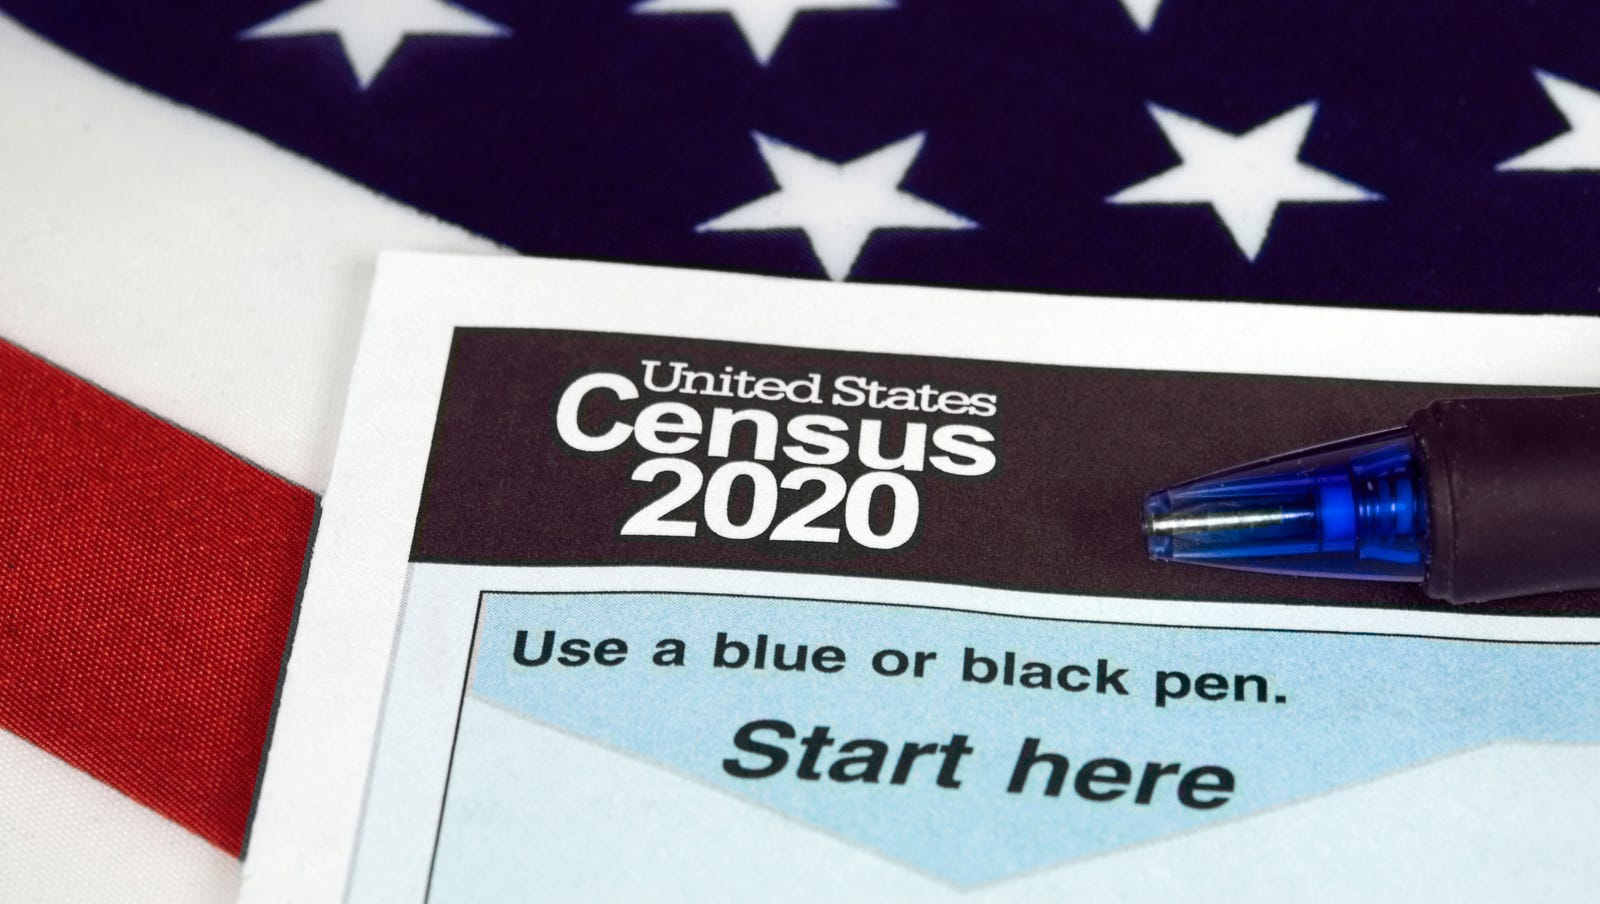 Here's what you need to know about the U.S. Census 2020